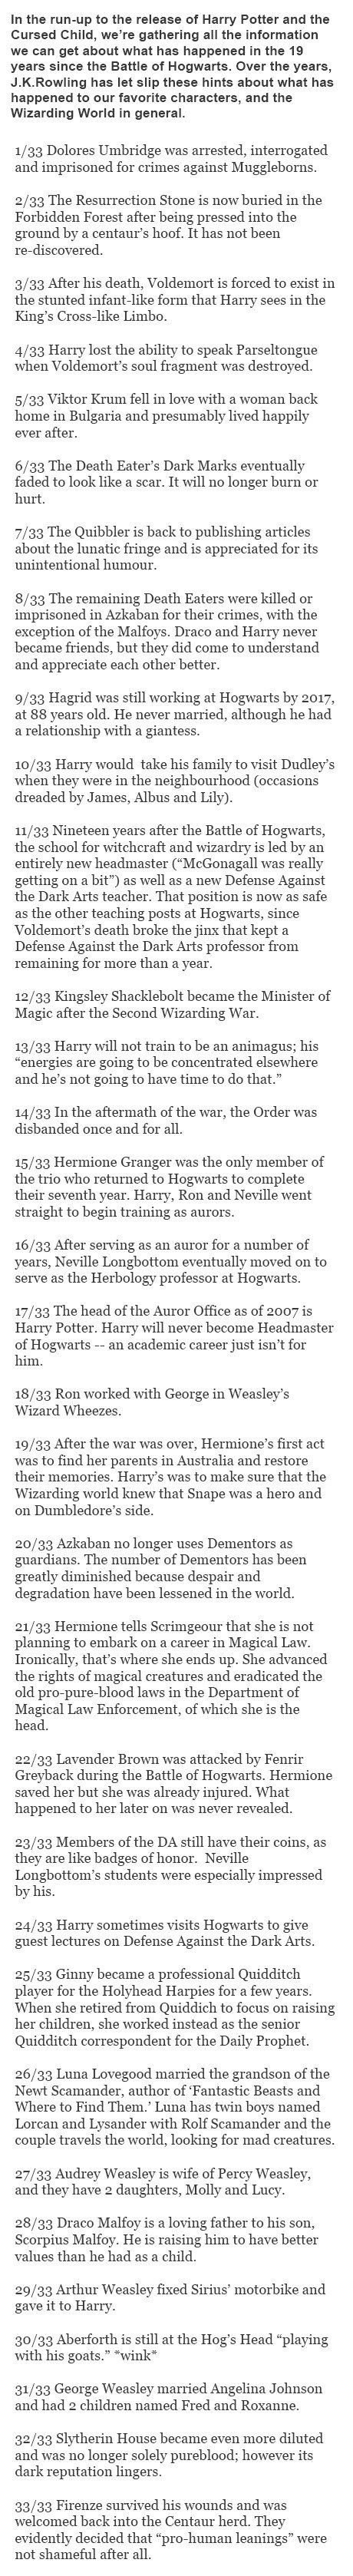 33 Things That Have Happened In The Harry Potter Universe Since The Series Ended.